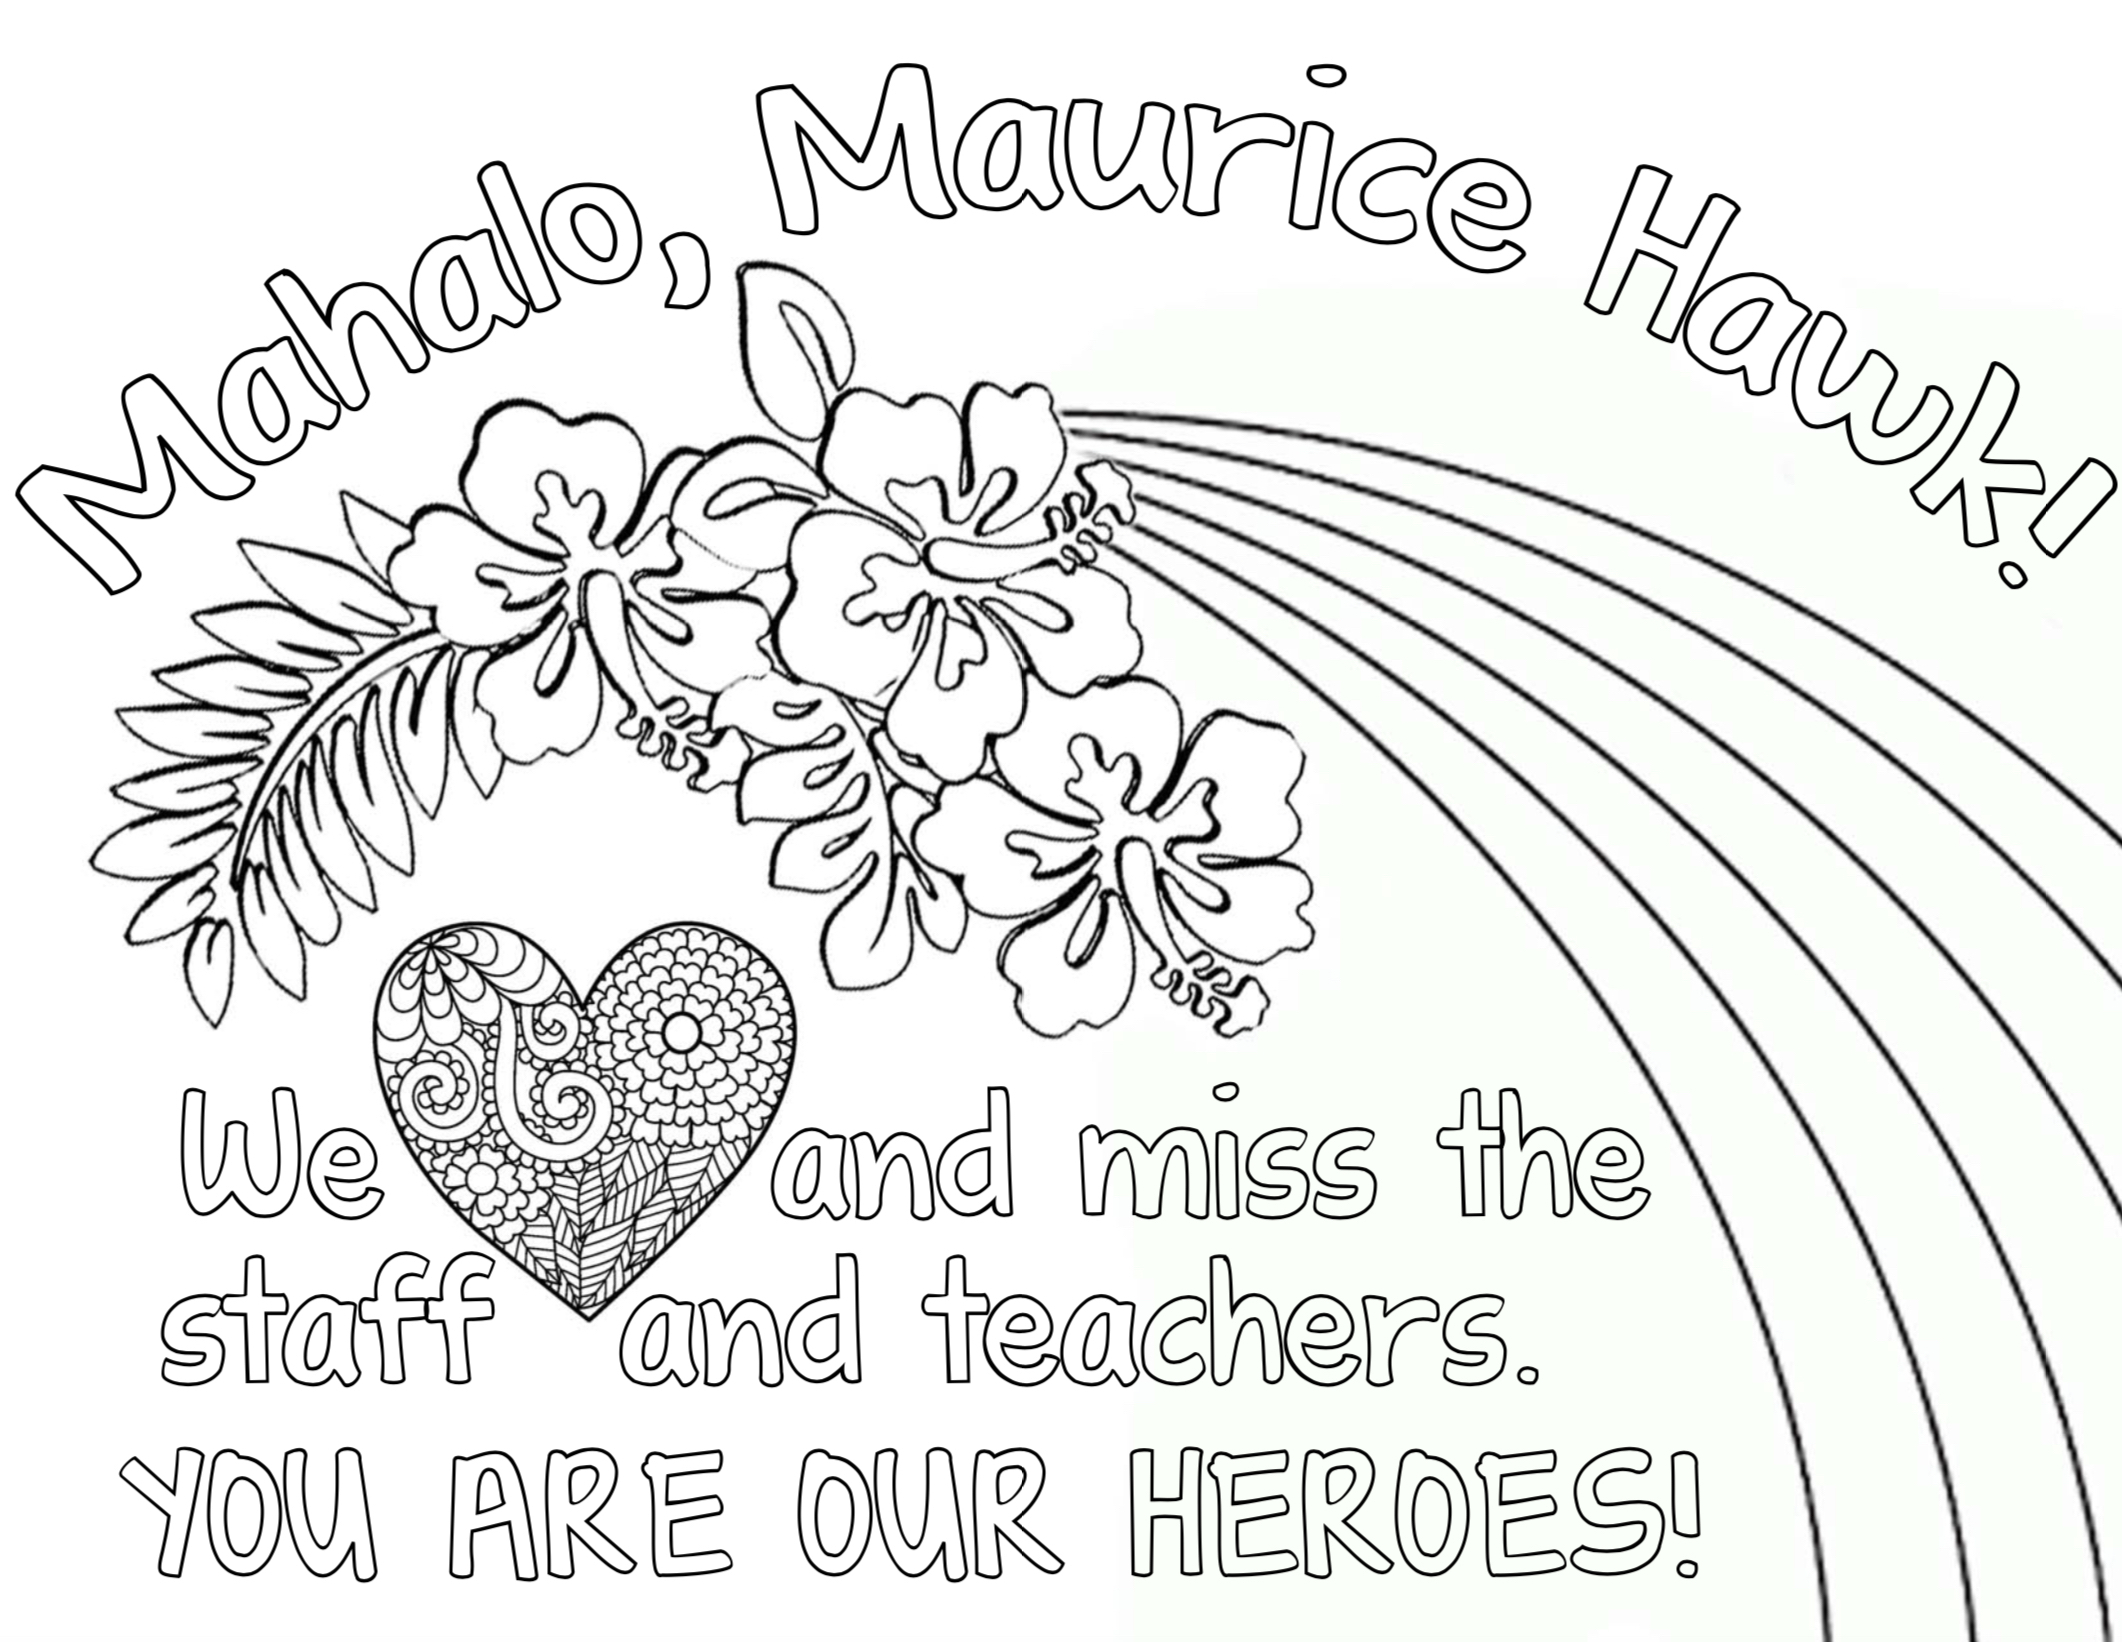 Maurice Hawk PTA Virtual Staff Appreciation Week May 4 – 8, 2020